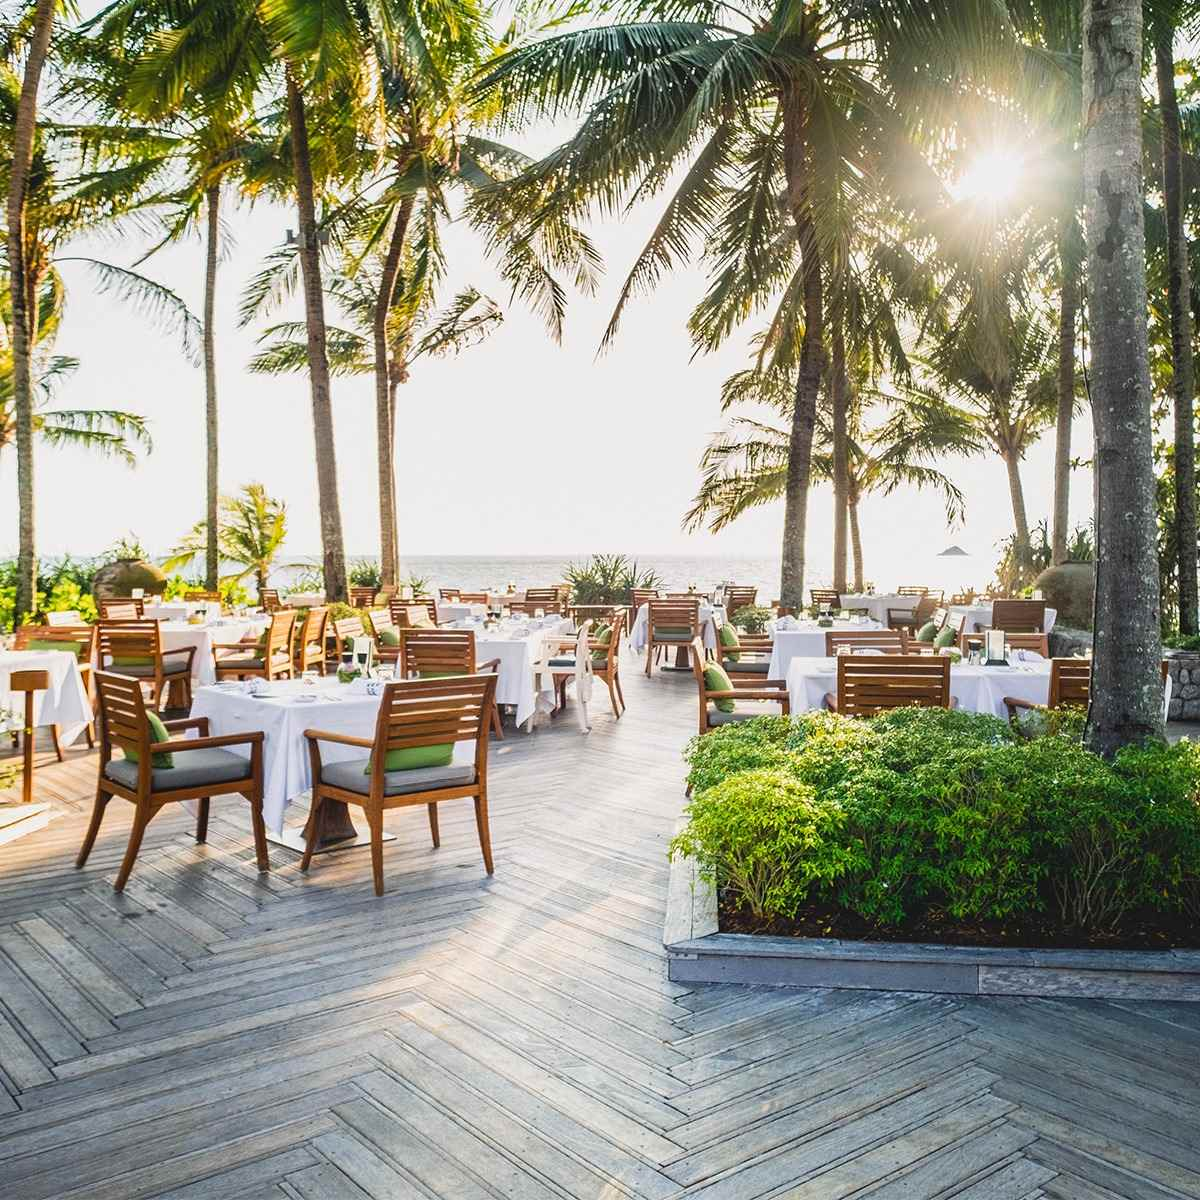 Dining at The Deck at the Trisara Resort on Phuket, Thailand